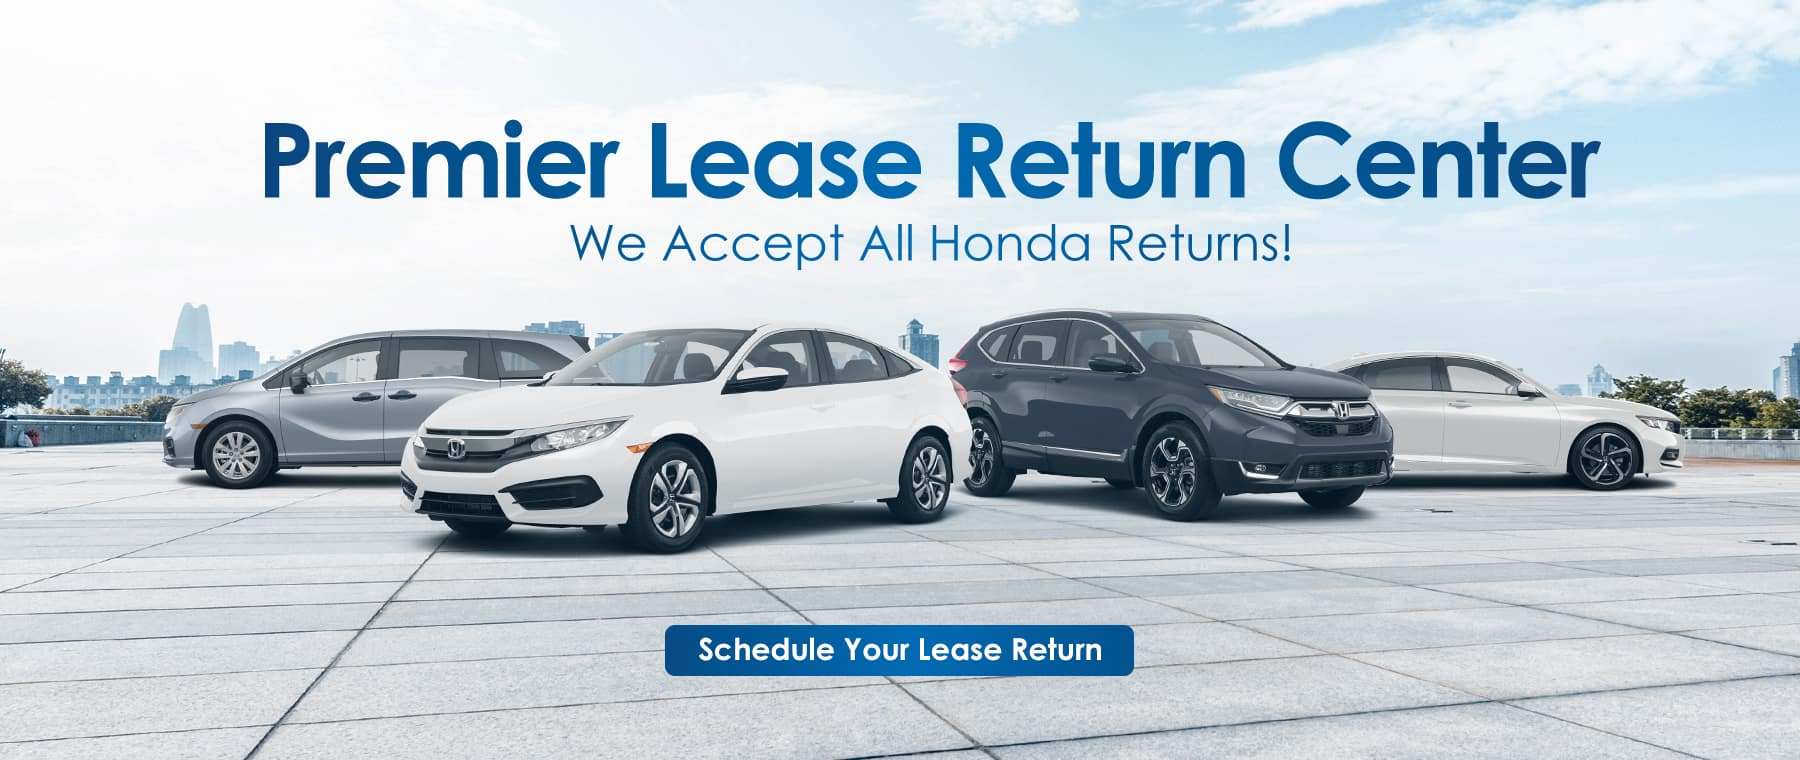 premier lease return banner